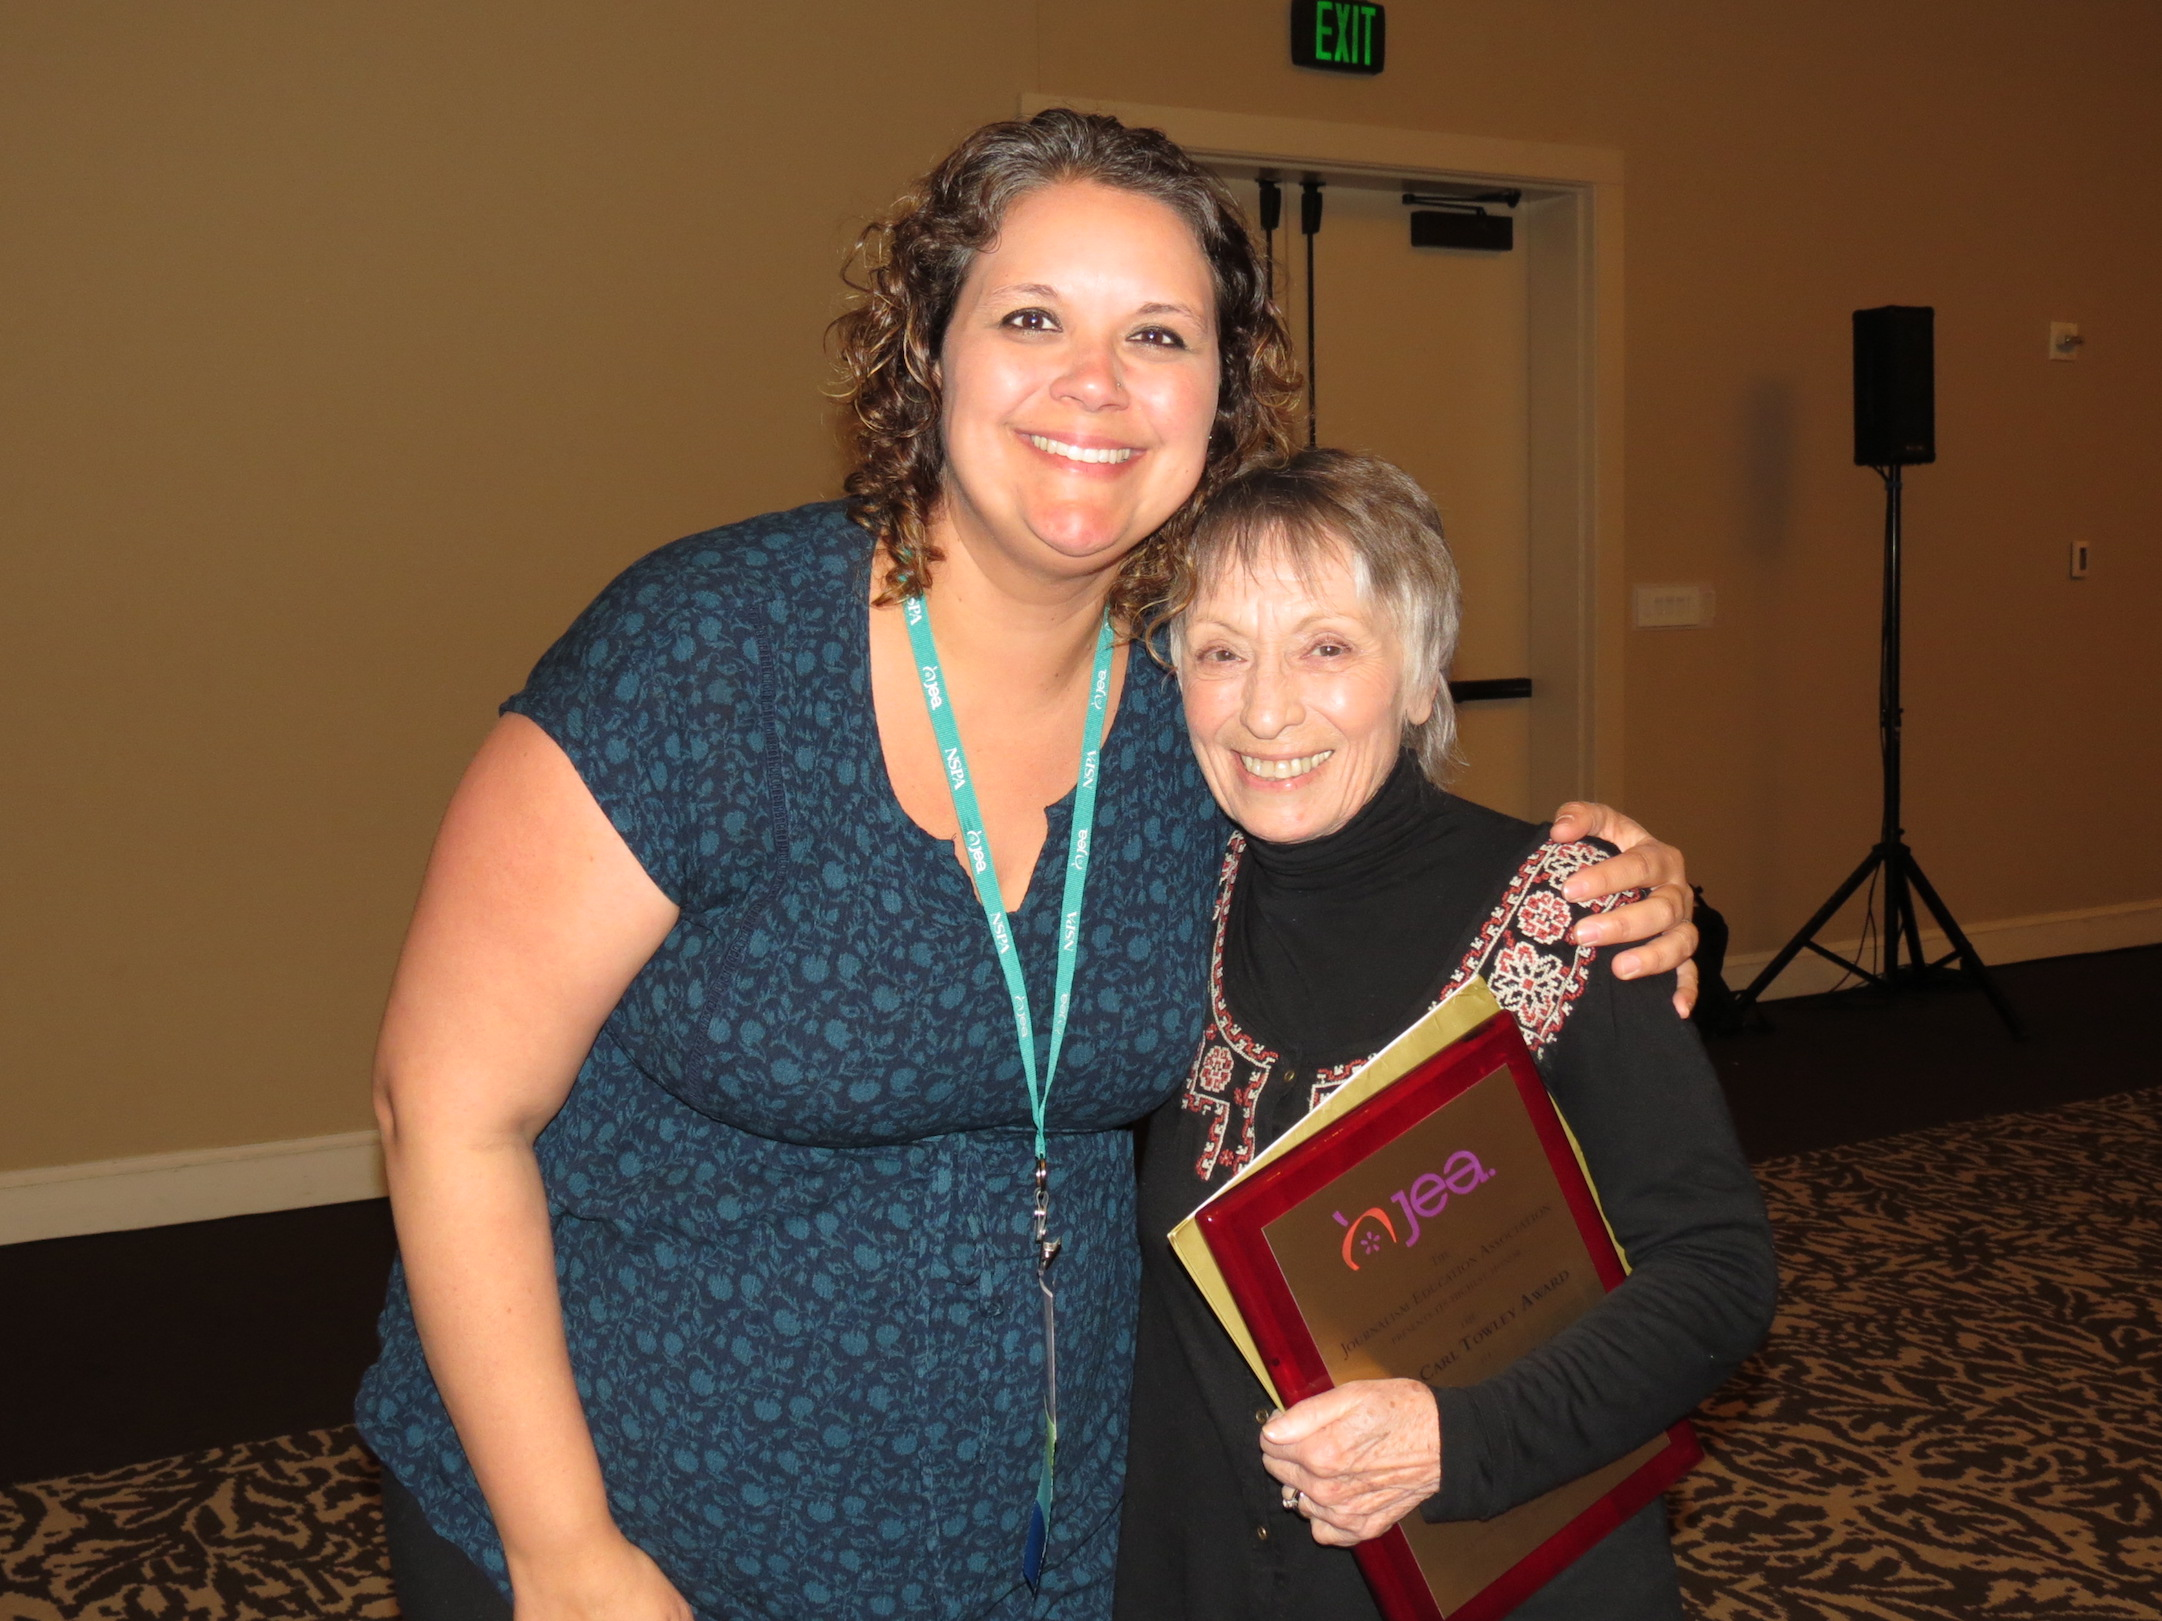 Adviser Natalie Owsley presents the Carl Towley award to Dina Ferentinos. Photo courtesy of Edmond Kwong